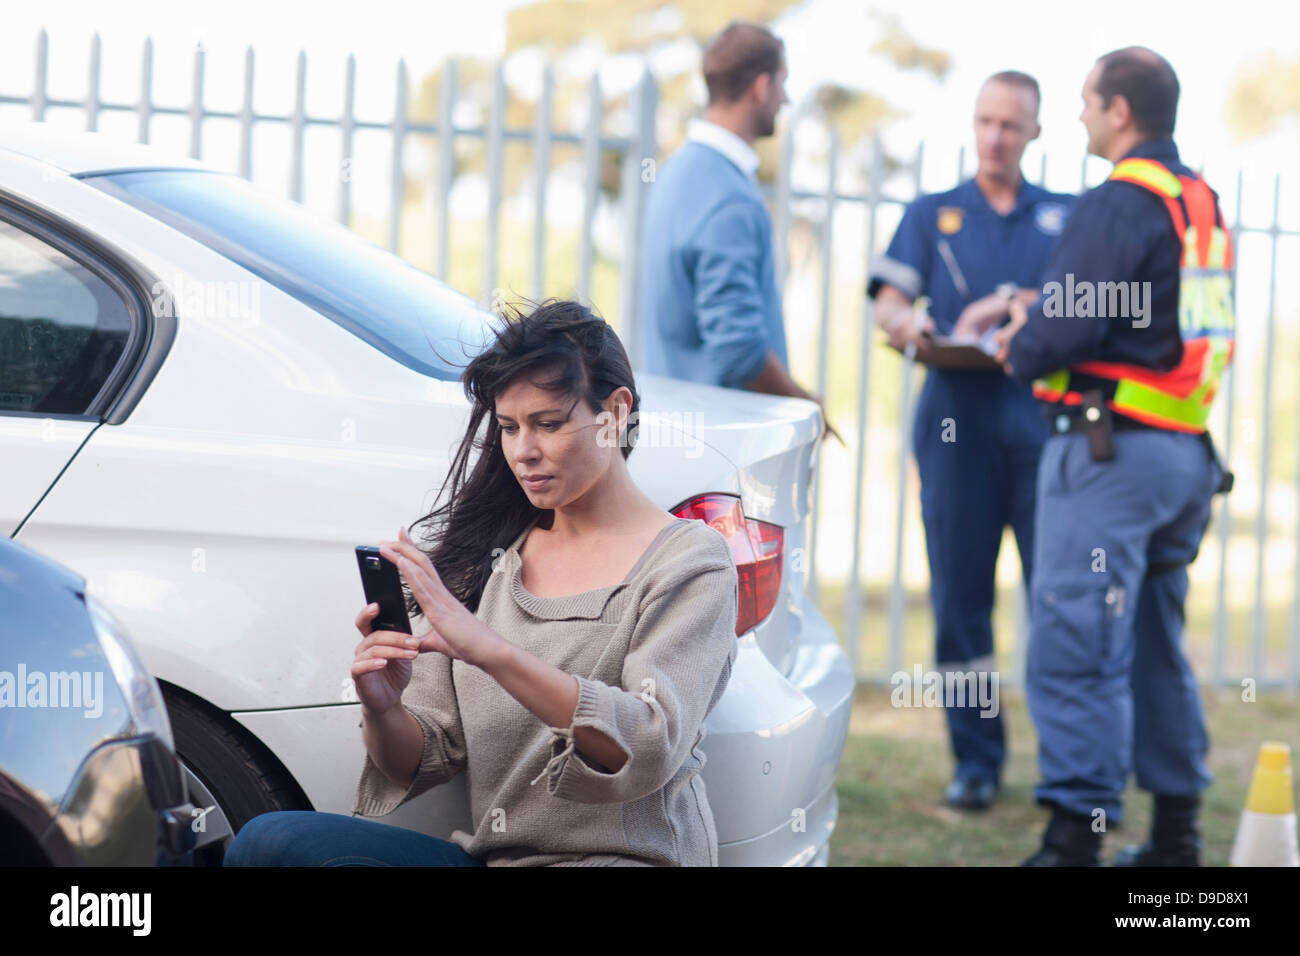 Woman photographing damage on her car at car accident scene - Stock Image